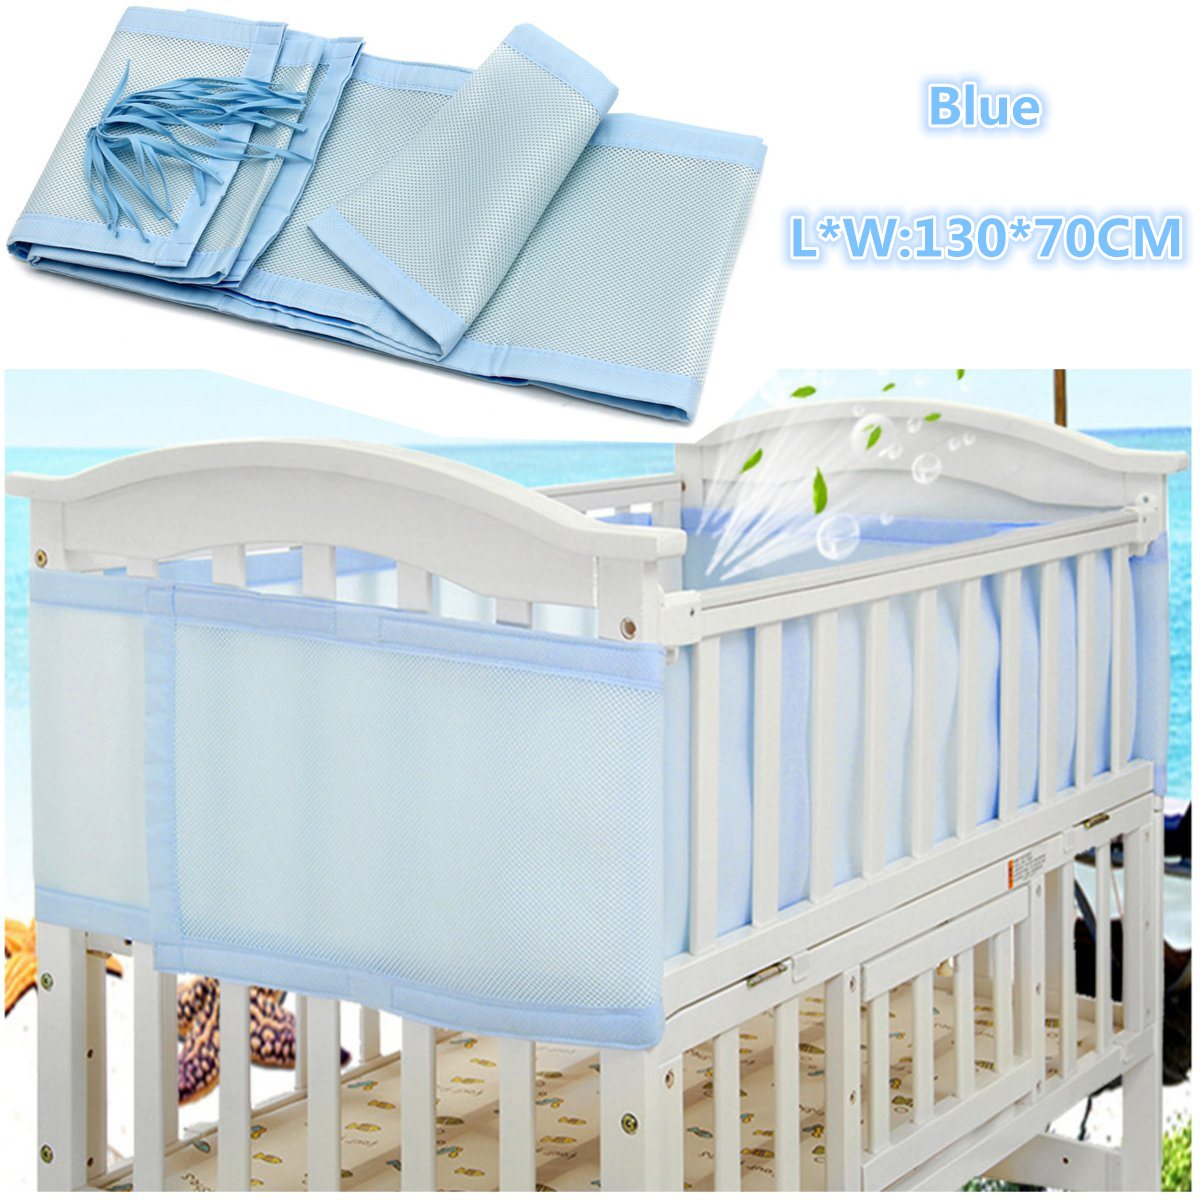 Blue Infant Baby Air Pad Cot Bumper Mesh Protection Cover Infantile Bedding Baby Safety Baby Care